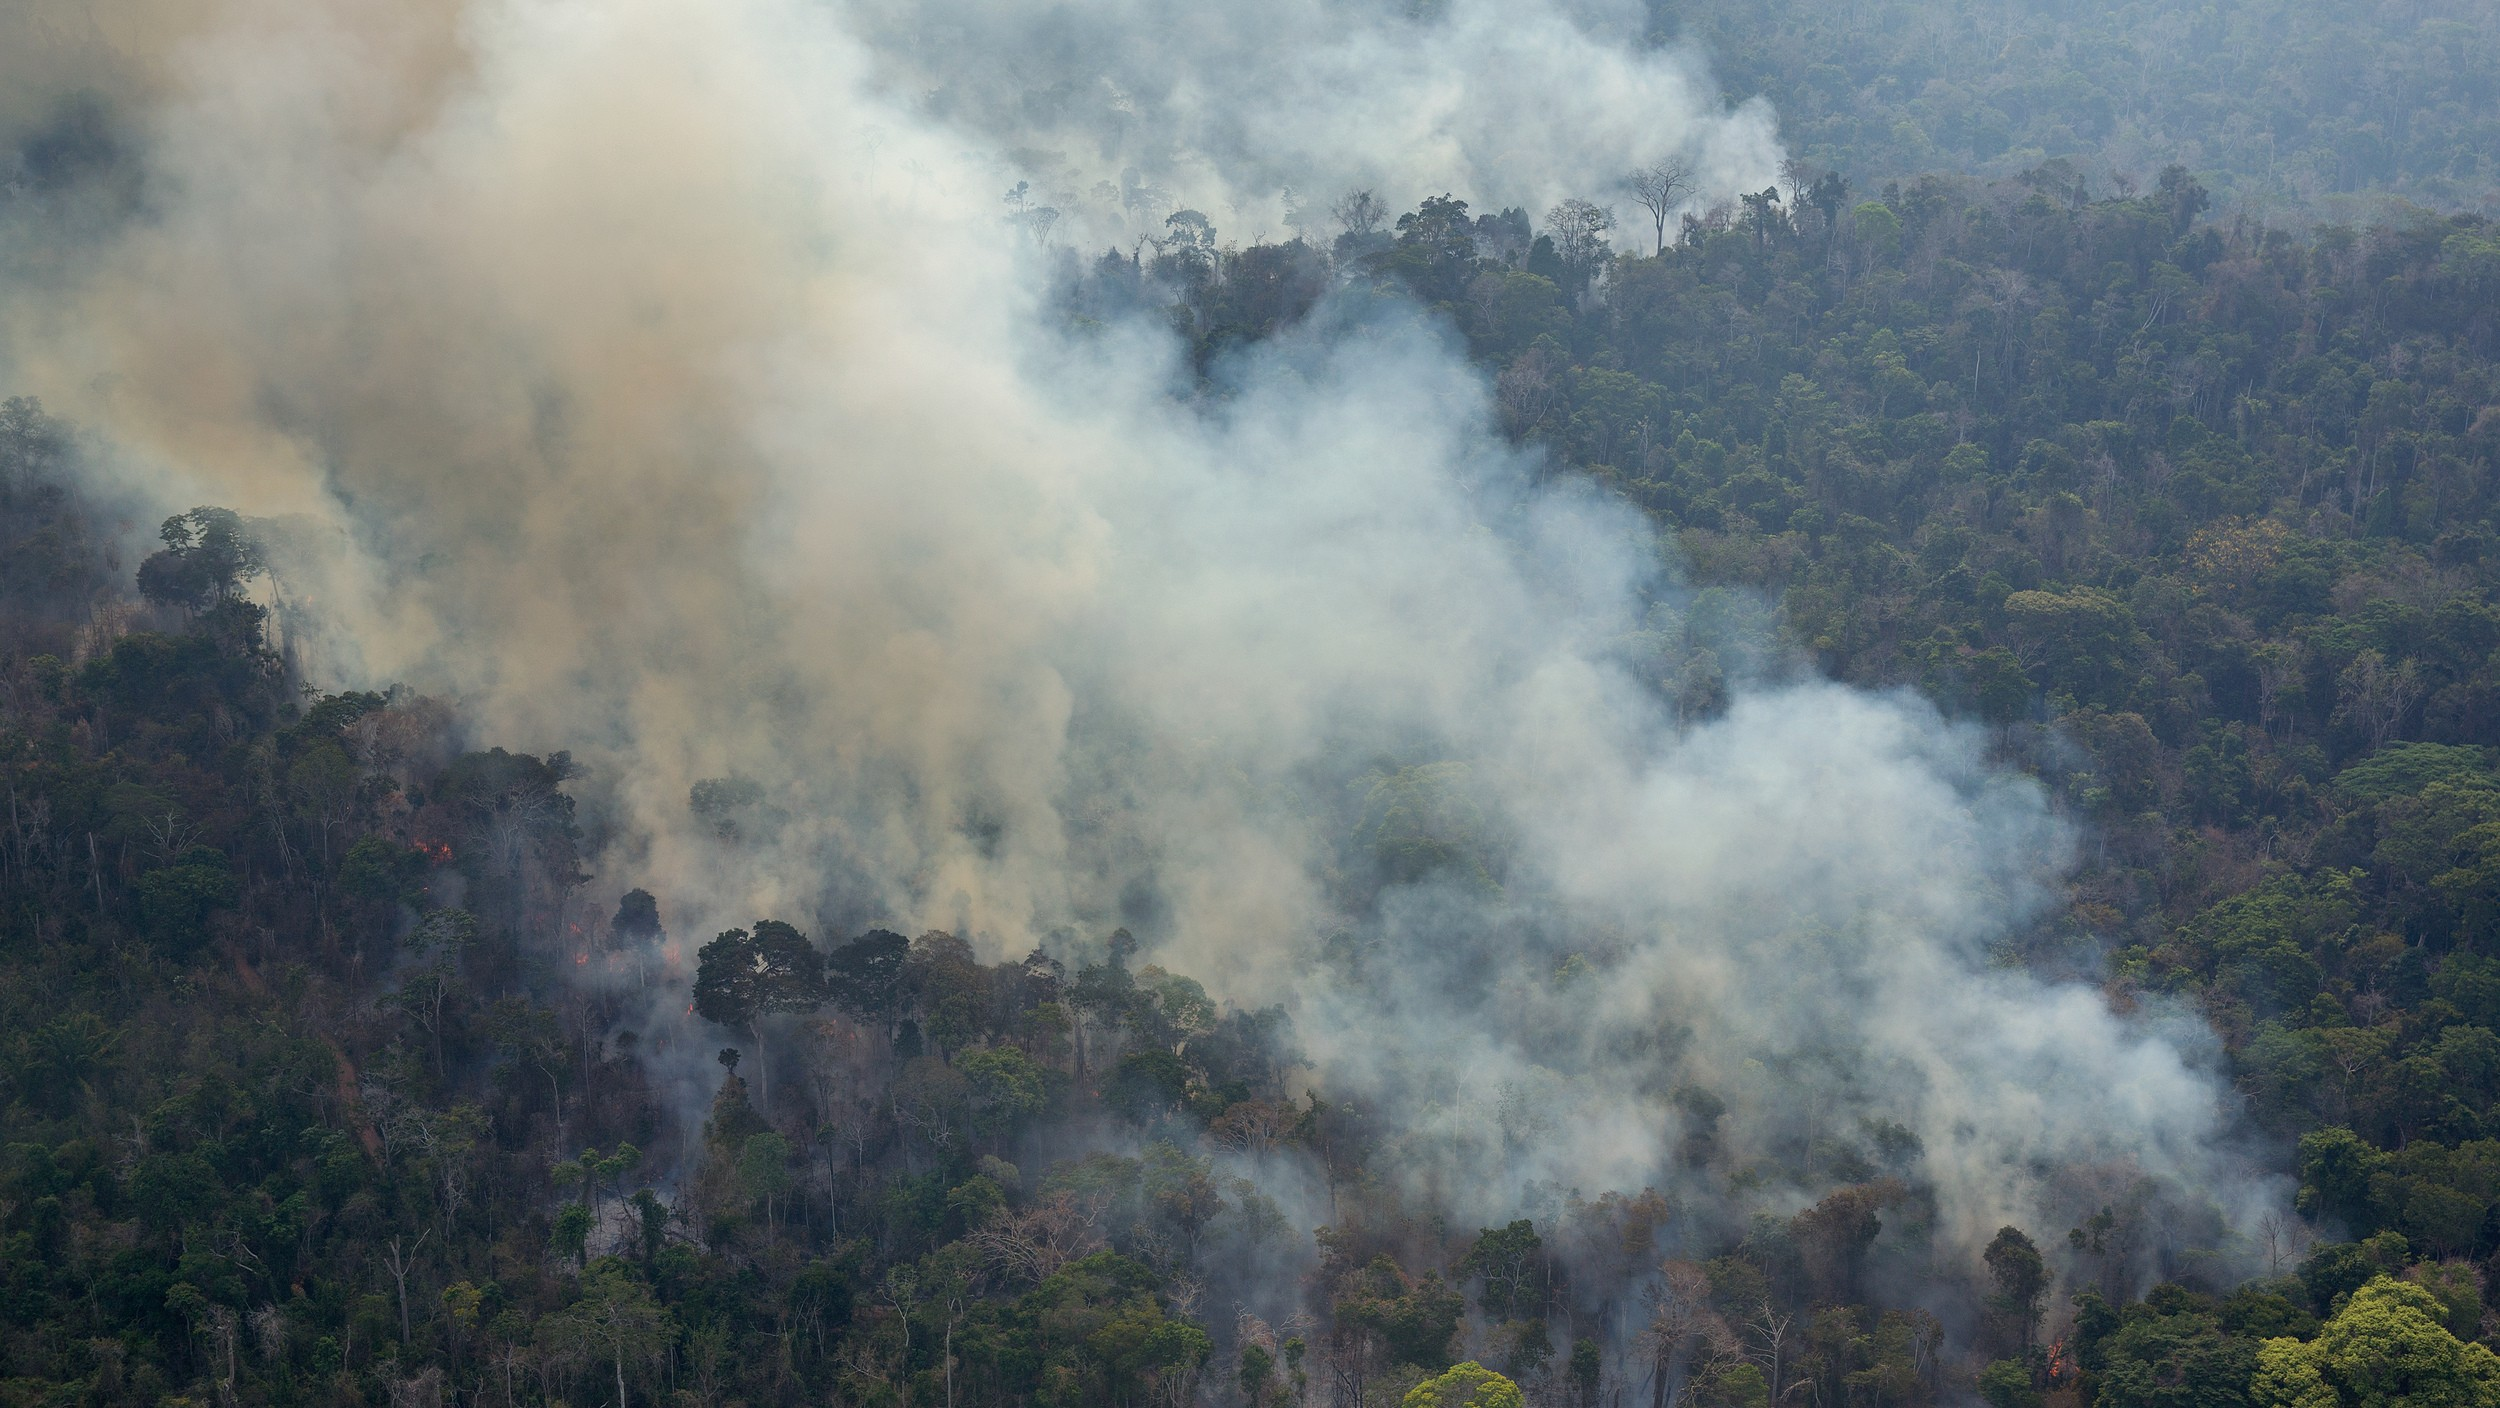 A Huge Fire in the Amazon Threatens Thousands of Indigenous People and an Uncontacted Tribe